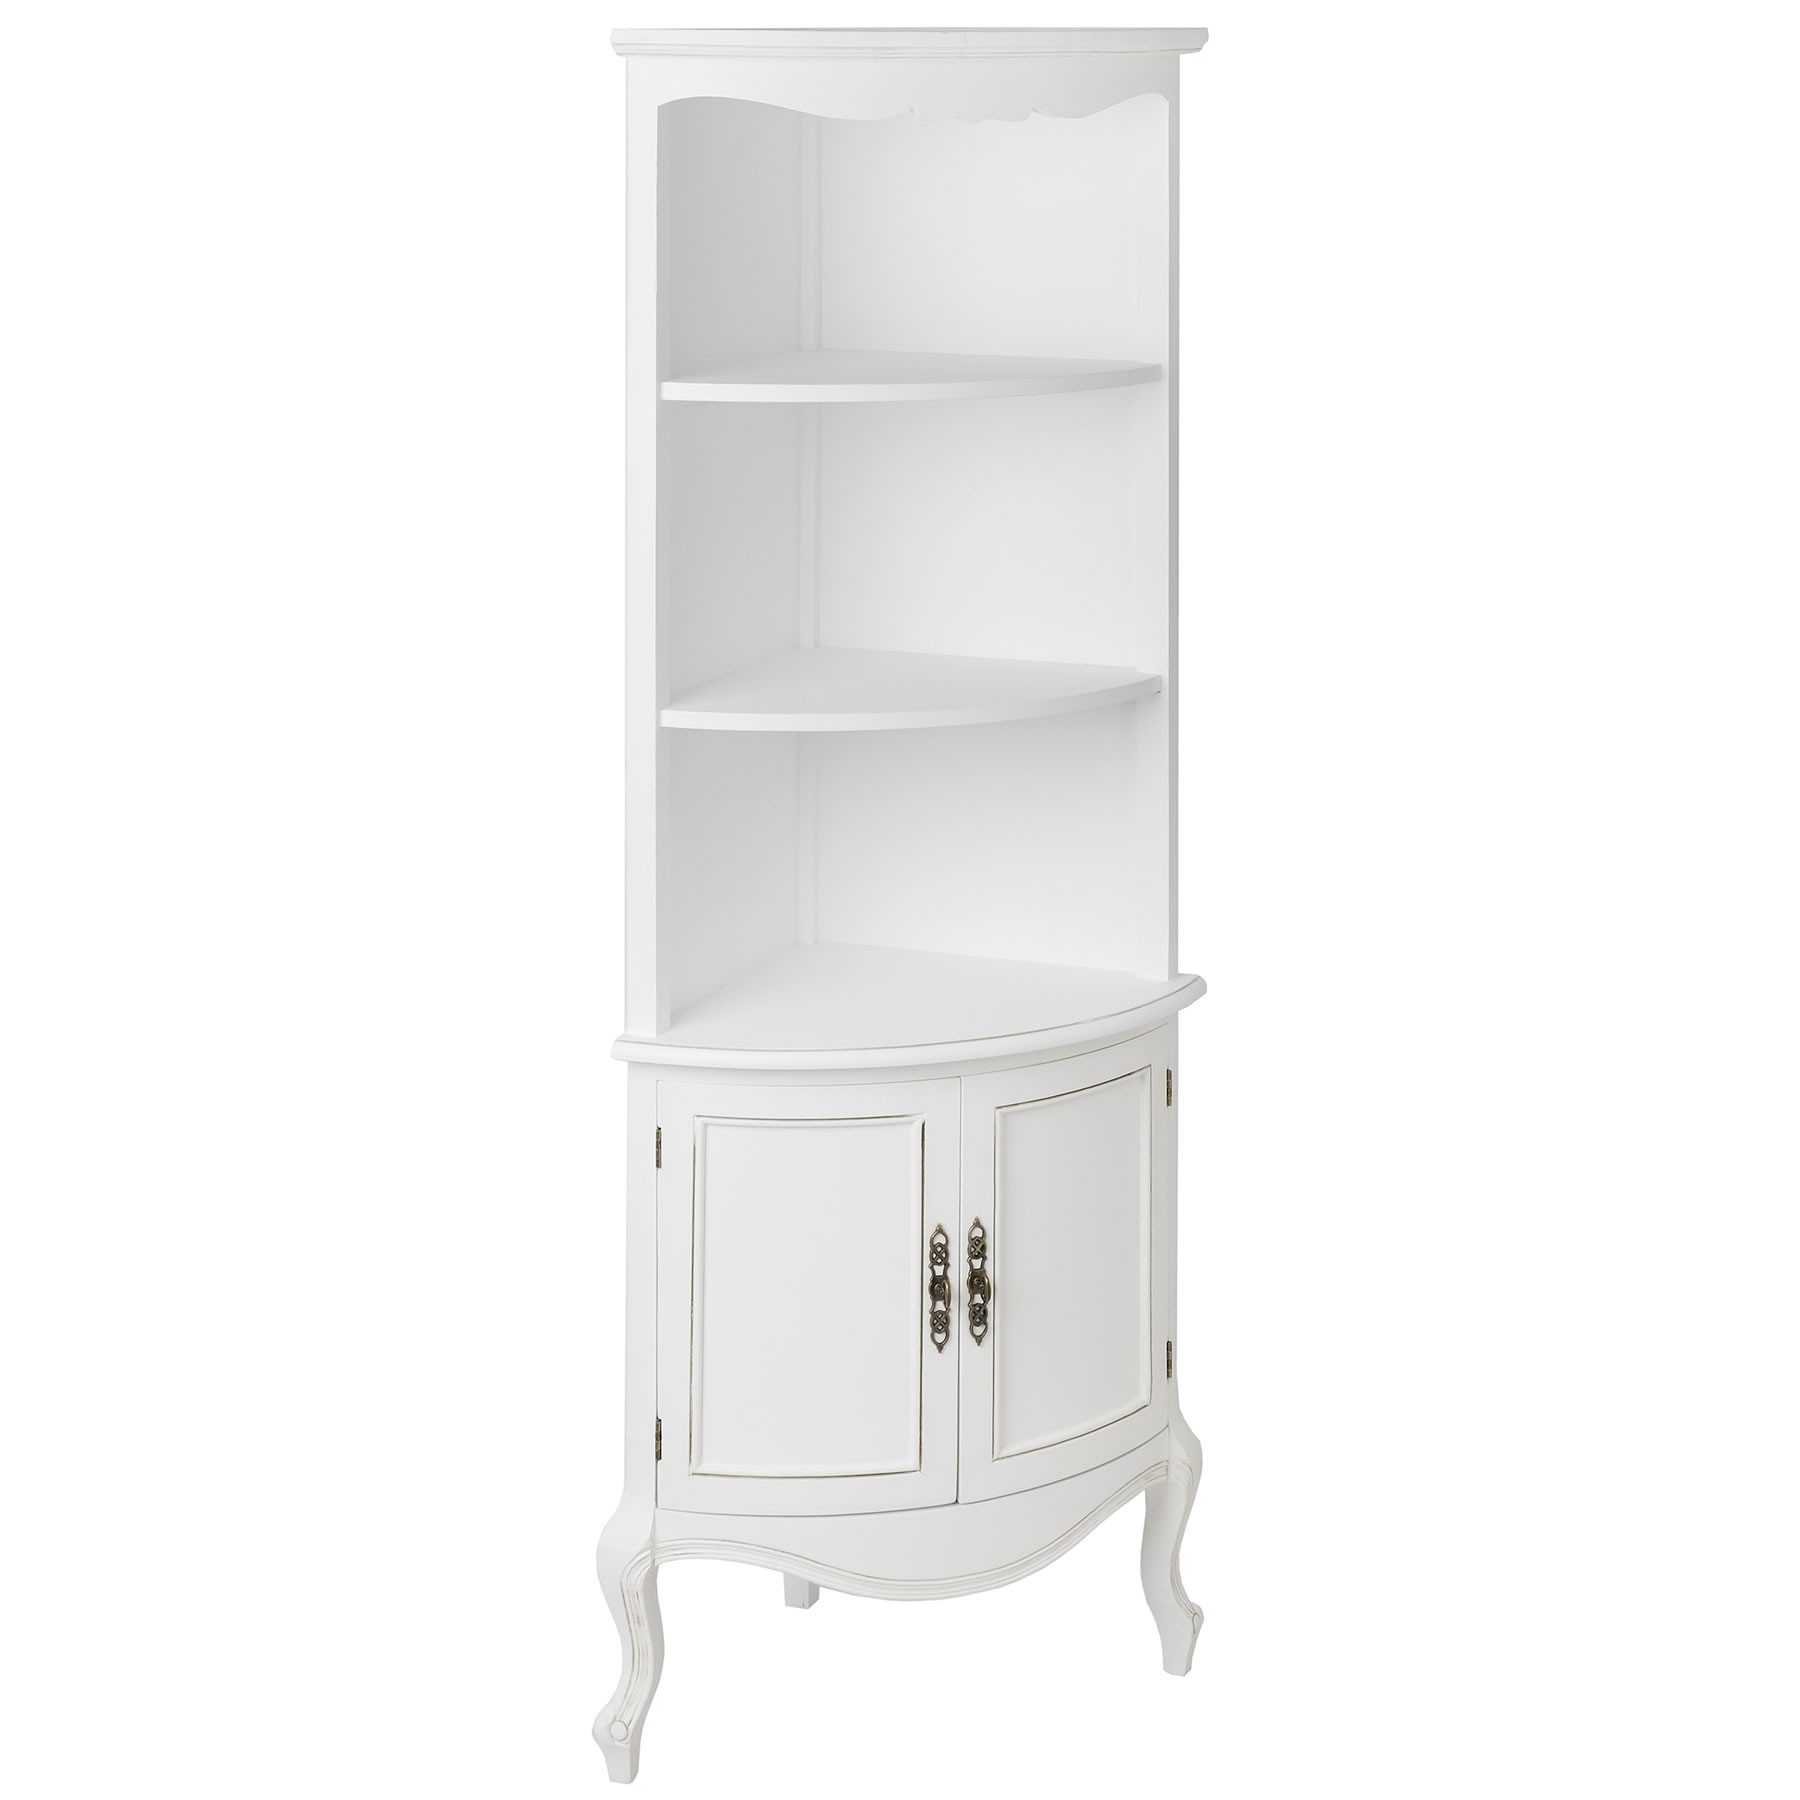 Free Standing White Shelves Throughout Most Up To Date Shelves : Delightful Interior White Wooden Tall Corner Shelves (View 8 of 15)